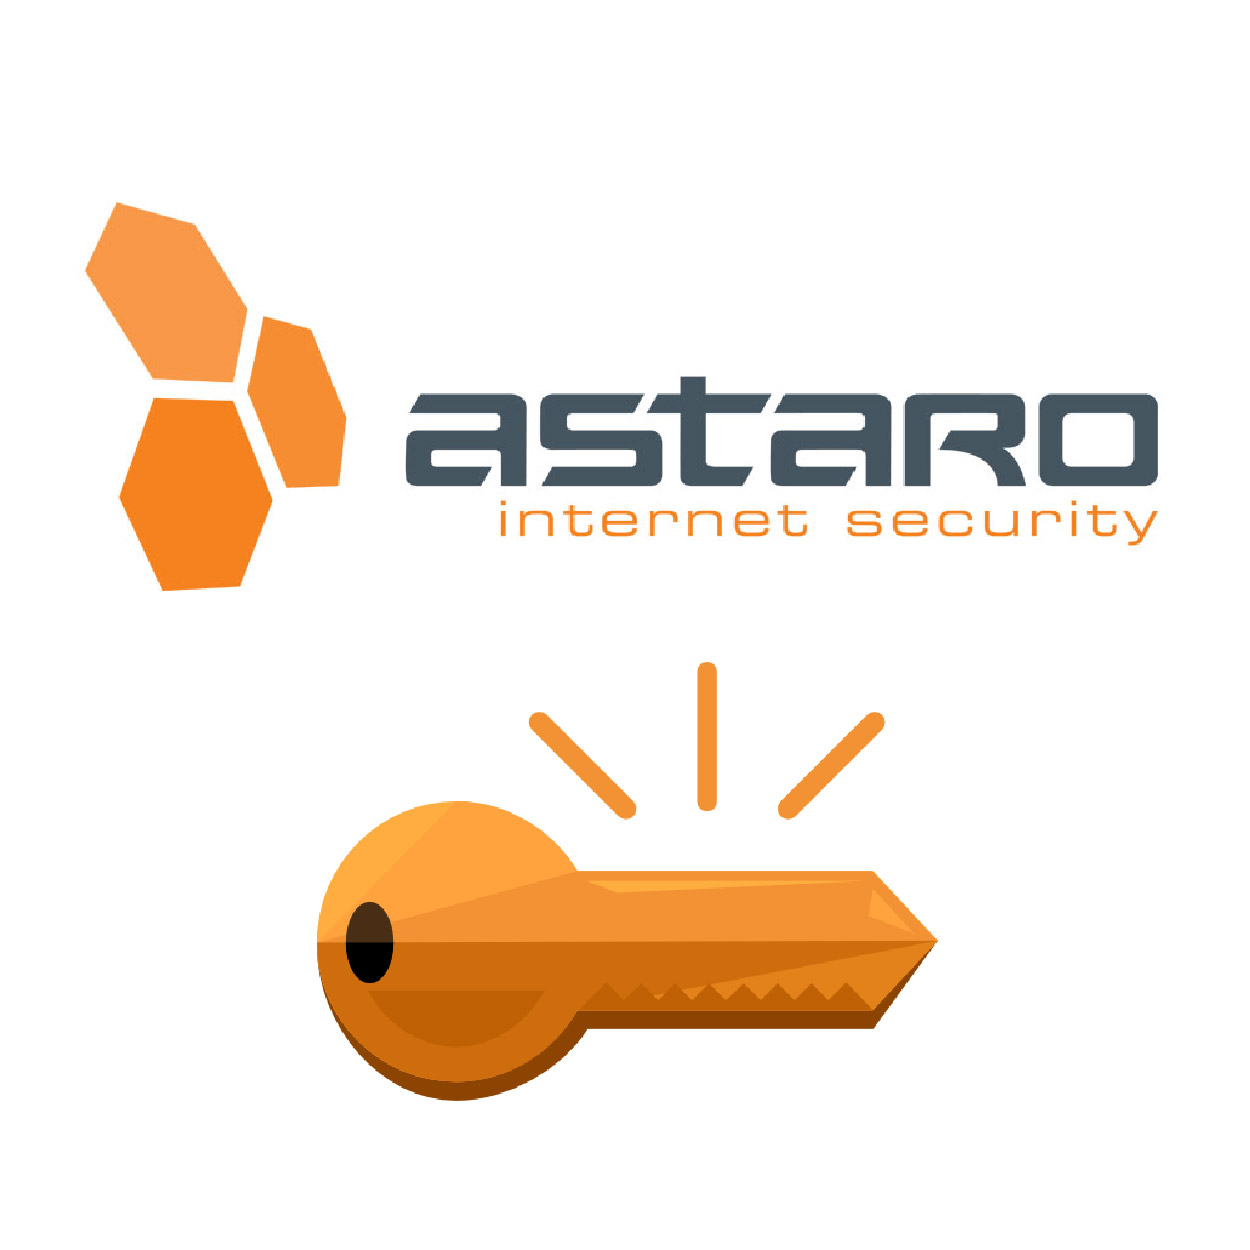 Astaro - Network Security Subscription for ASG 220 - Upgrading Key ,Firewall